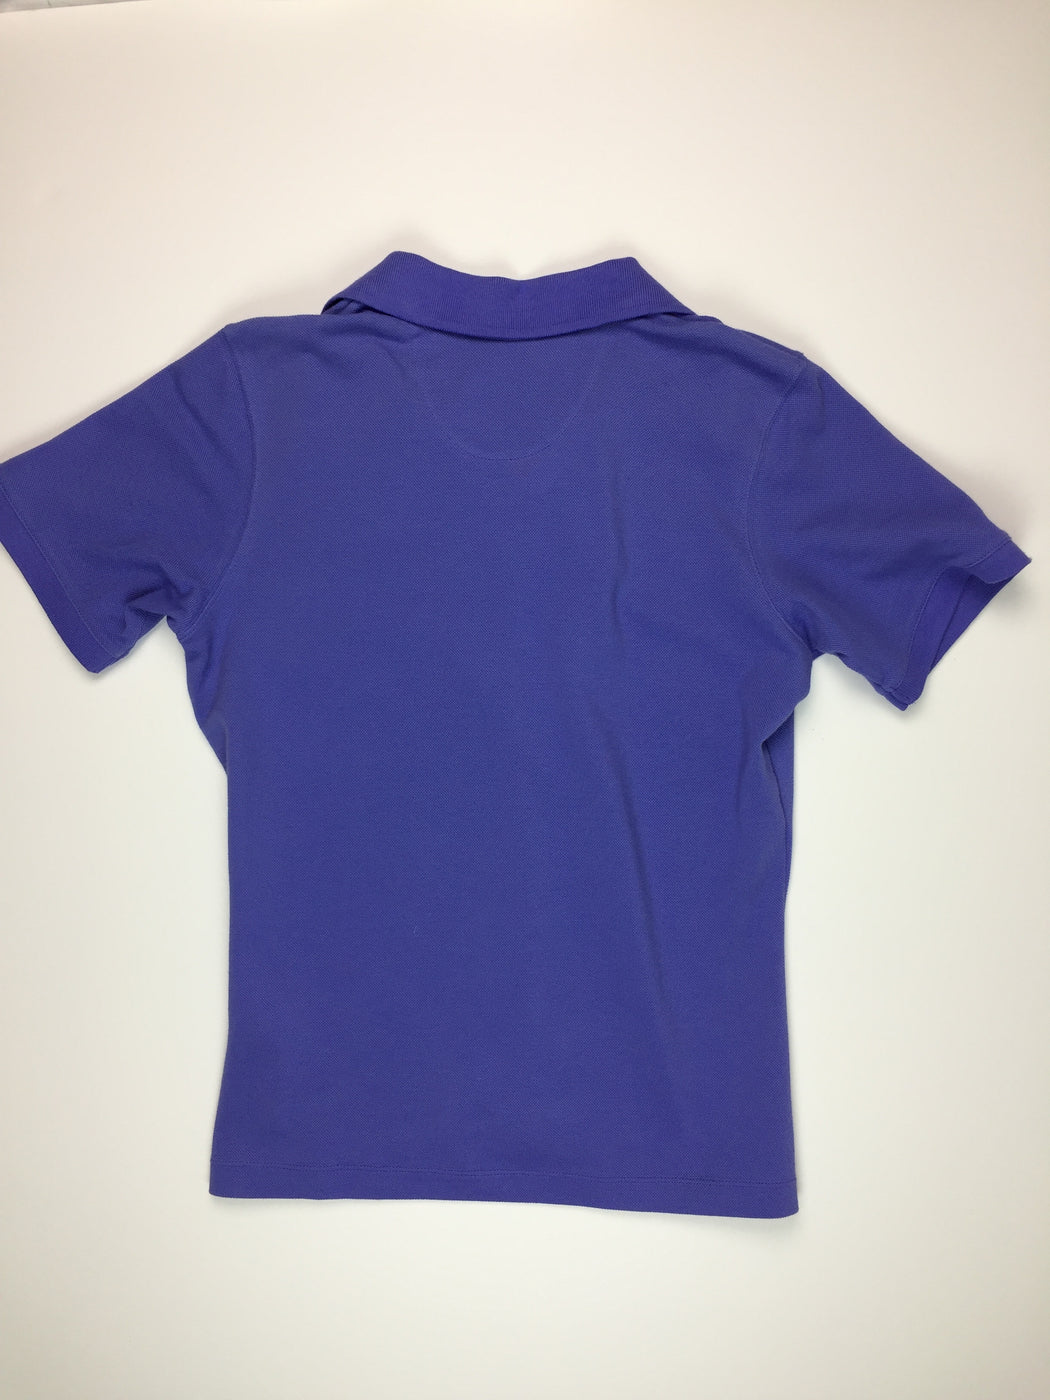 EP Pro Tour Dry Short Sleeve Cotton Golf Polo - Purple (Periwinkle)